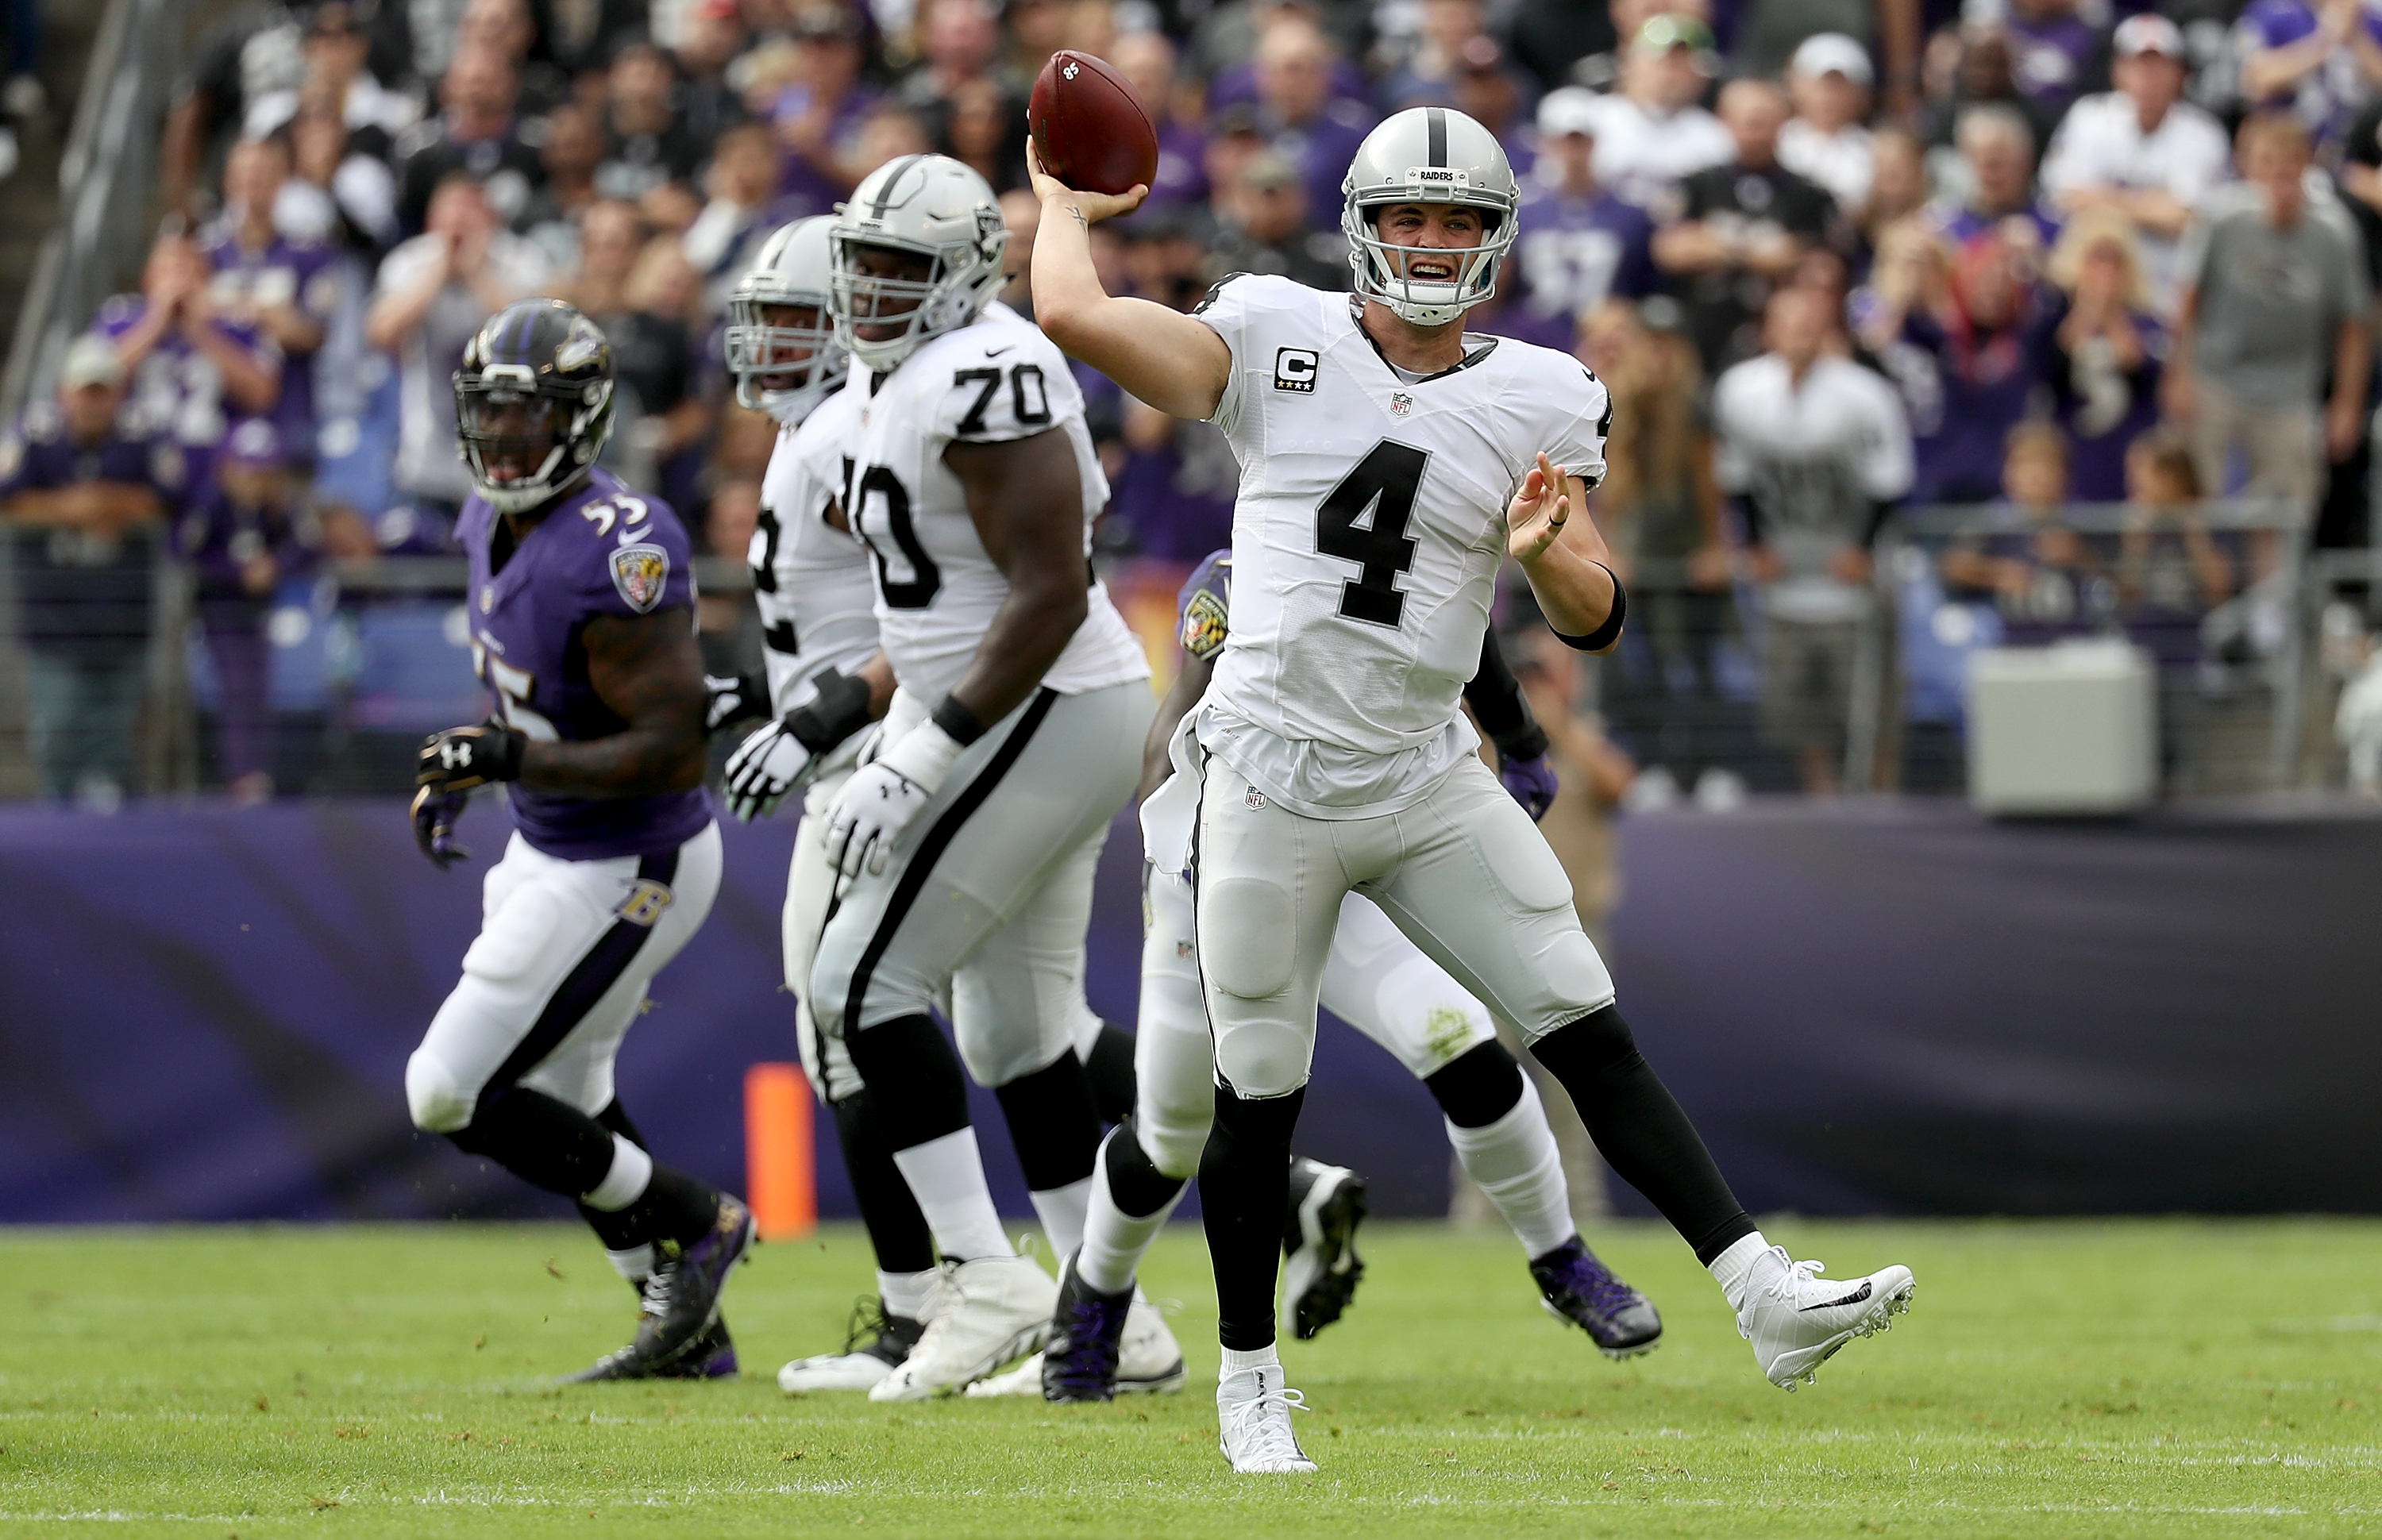 Derek Carr #4 of the Oakland Raiders throws a pass in the first quarter against the Baltimore Ravens at M&T Bank Stadium